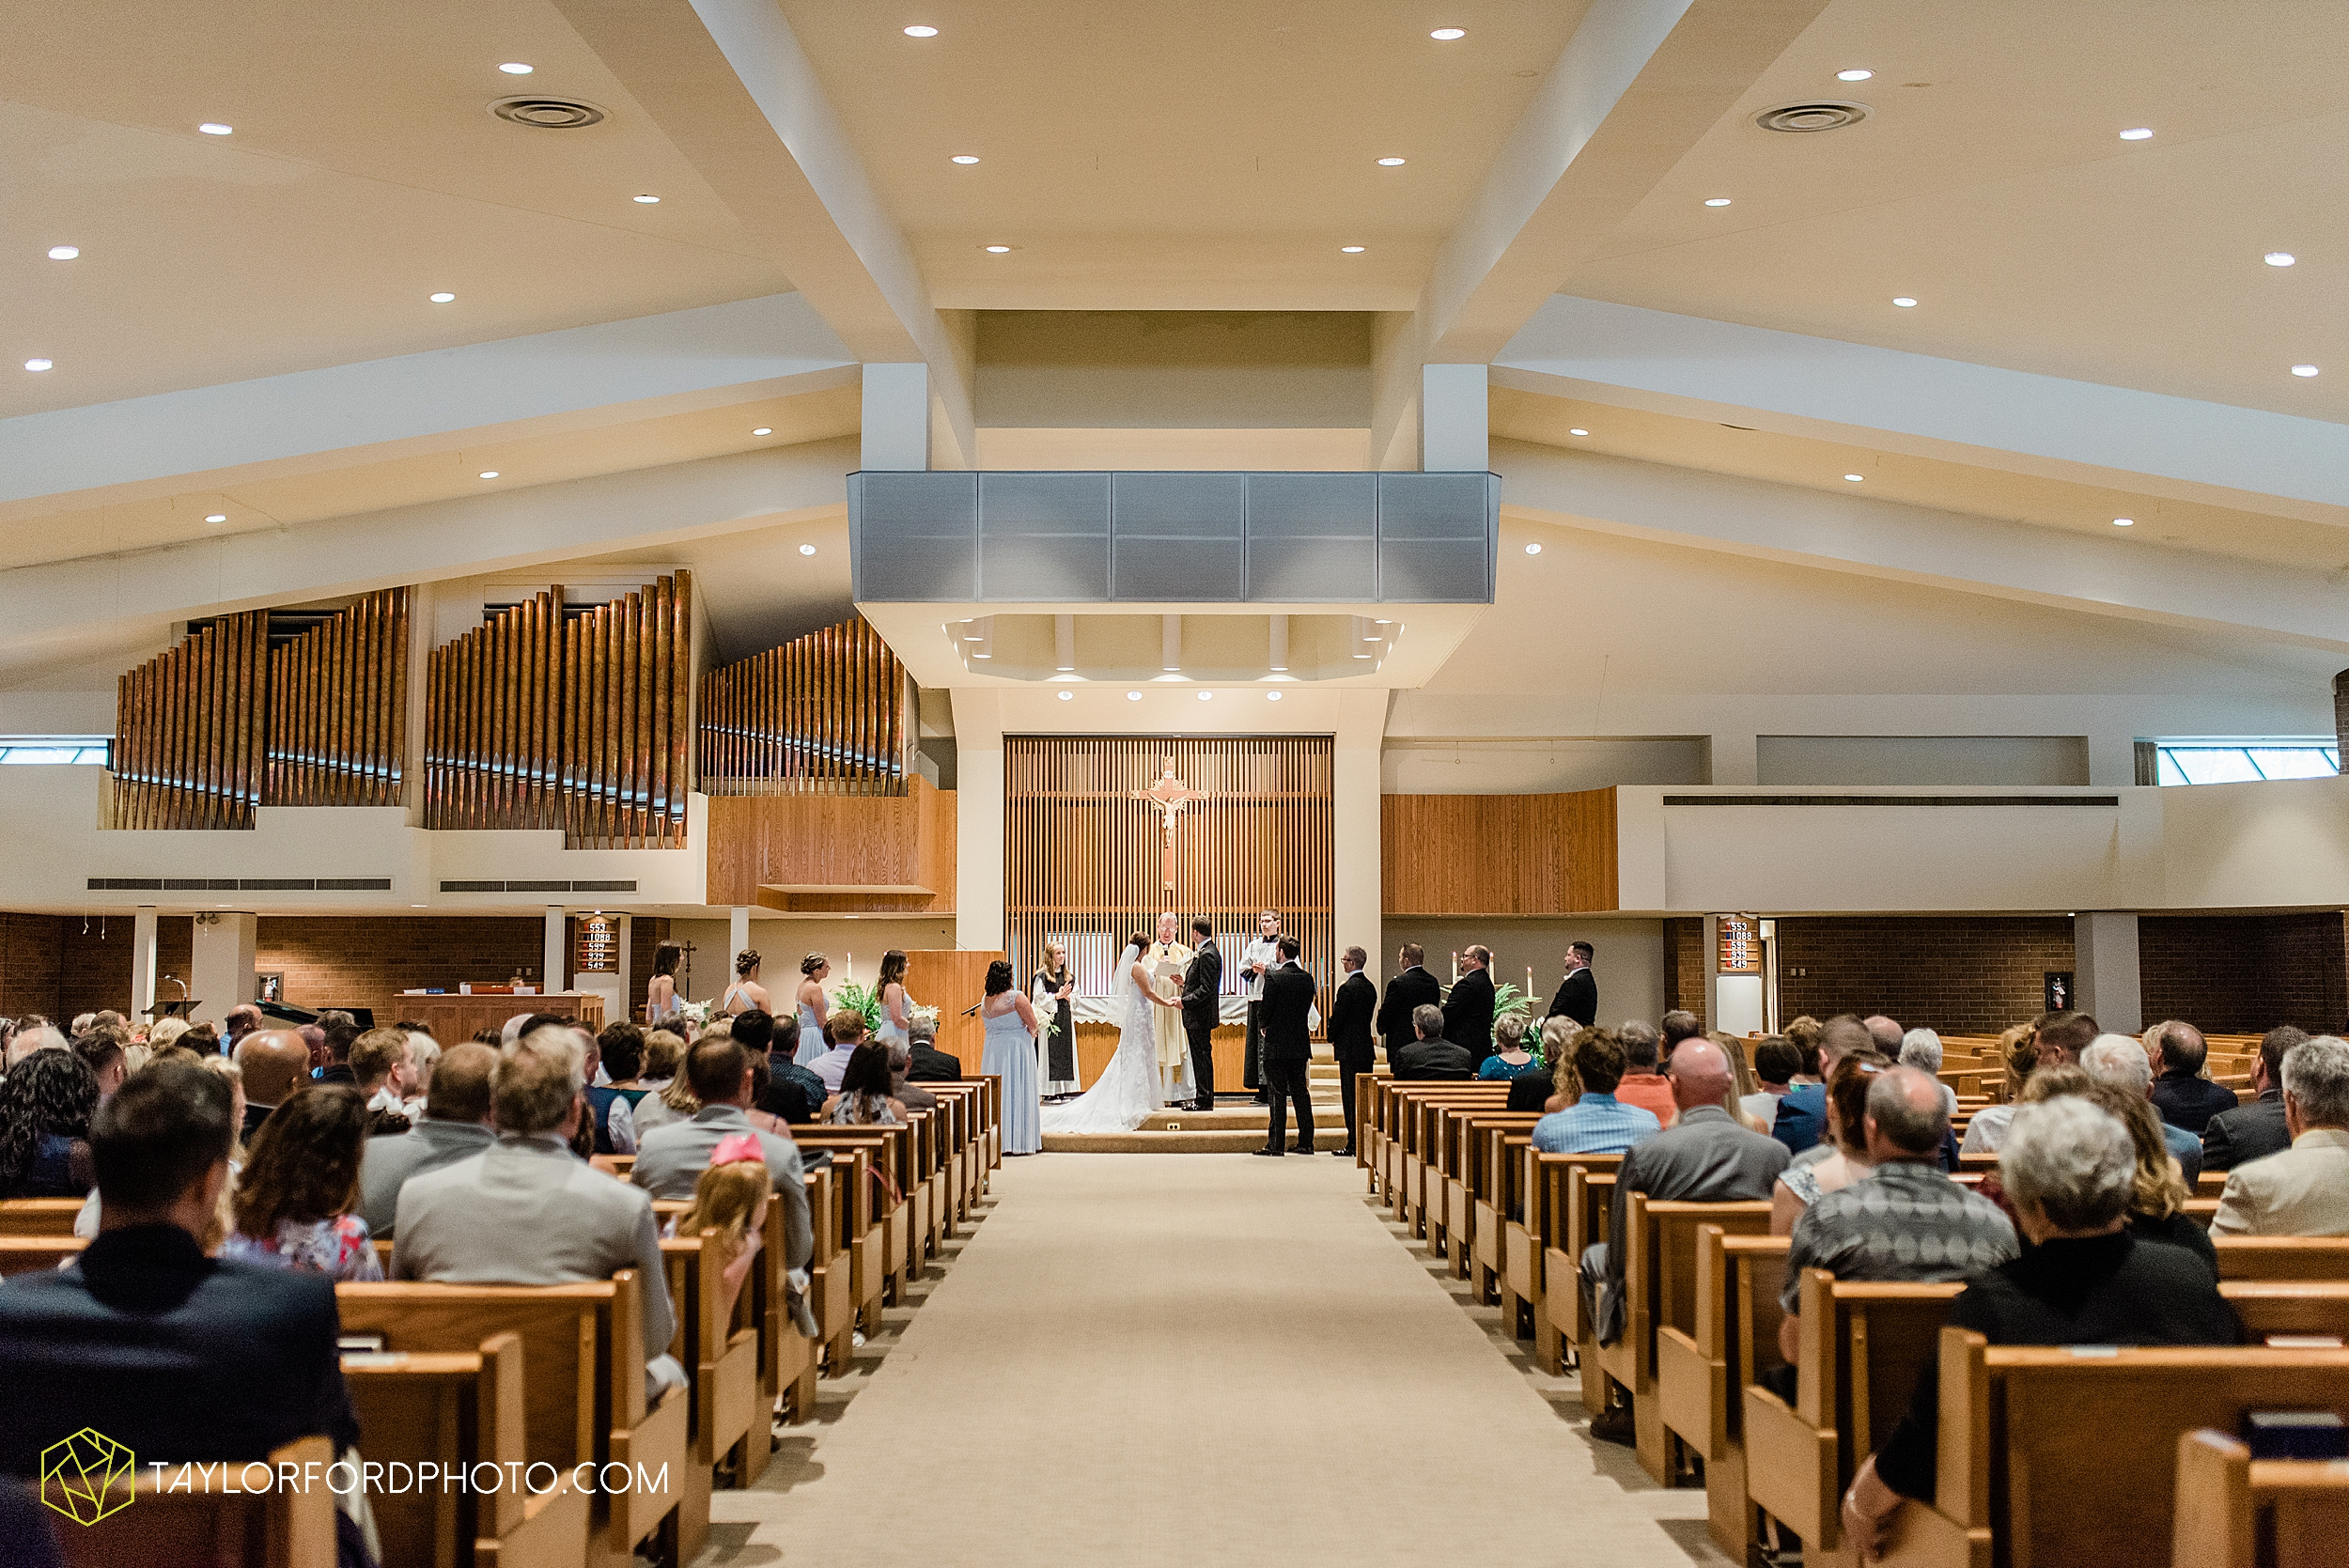 sullivan-st-francis-university-performing-arts-center-usf-saint-charles-borromeo-catholic-church-downtown-fort-wayne-indiana-wedding-photography-taylor-ford-hirschy-photographer_3225.jpg